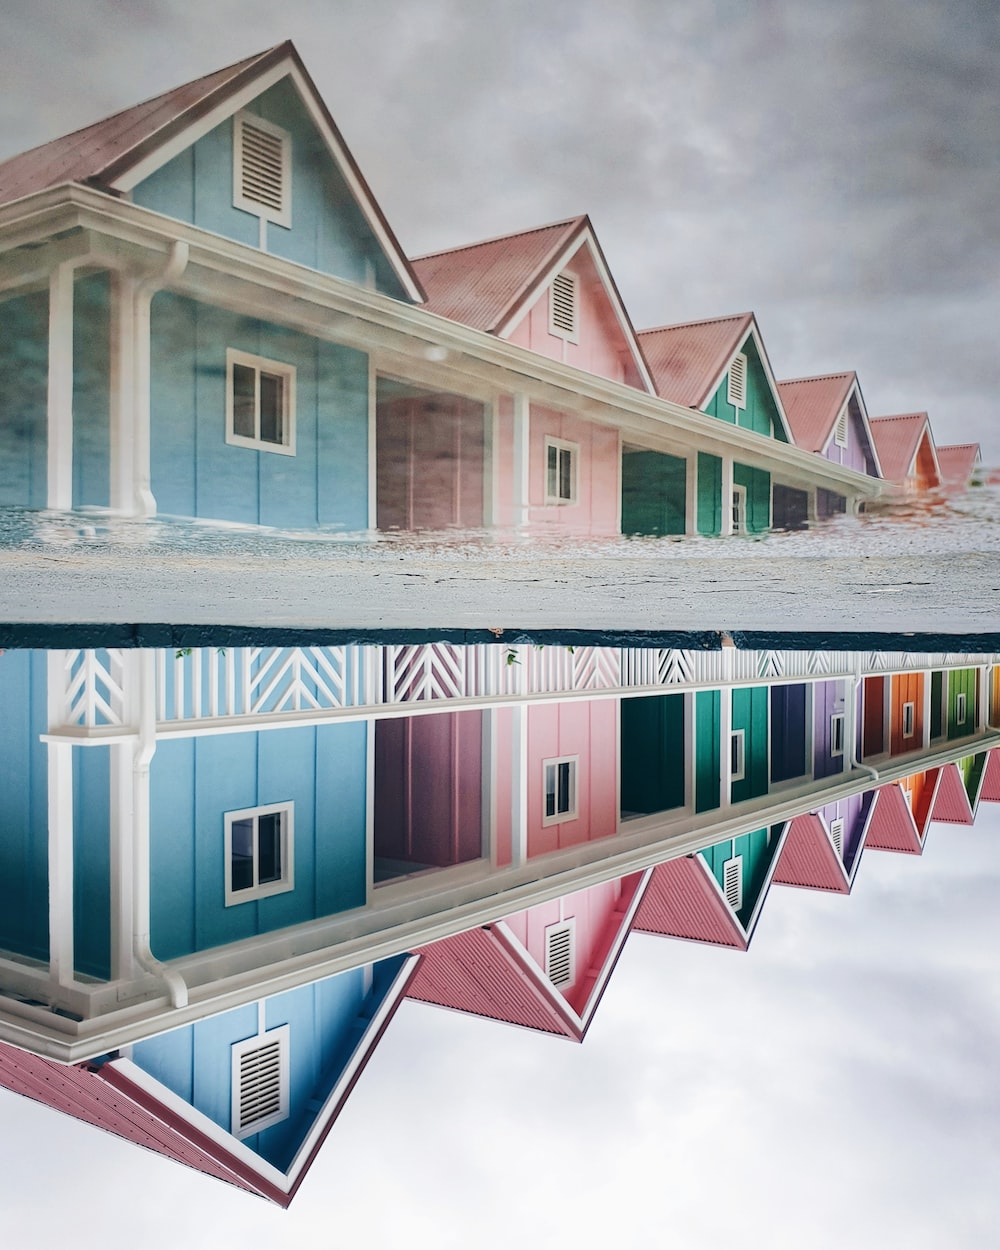 landscape photo of wooden houses